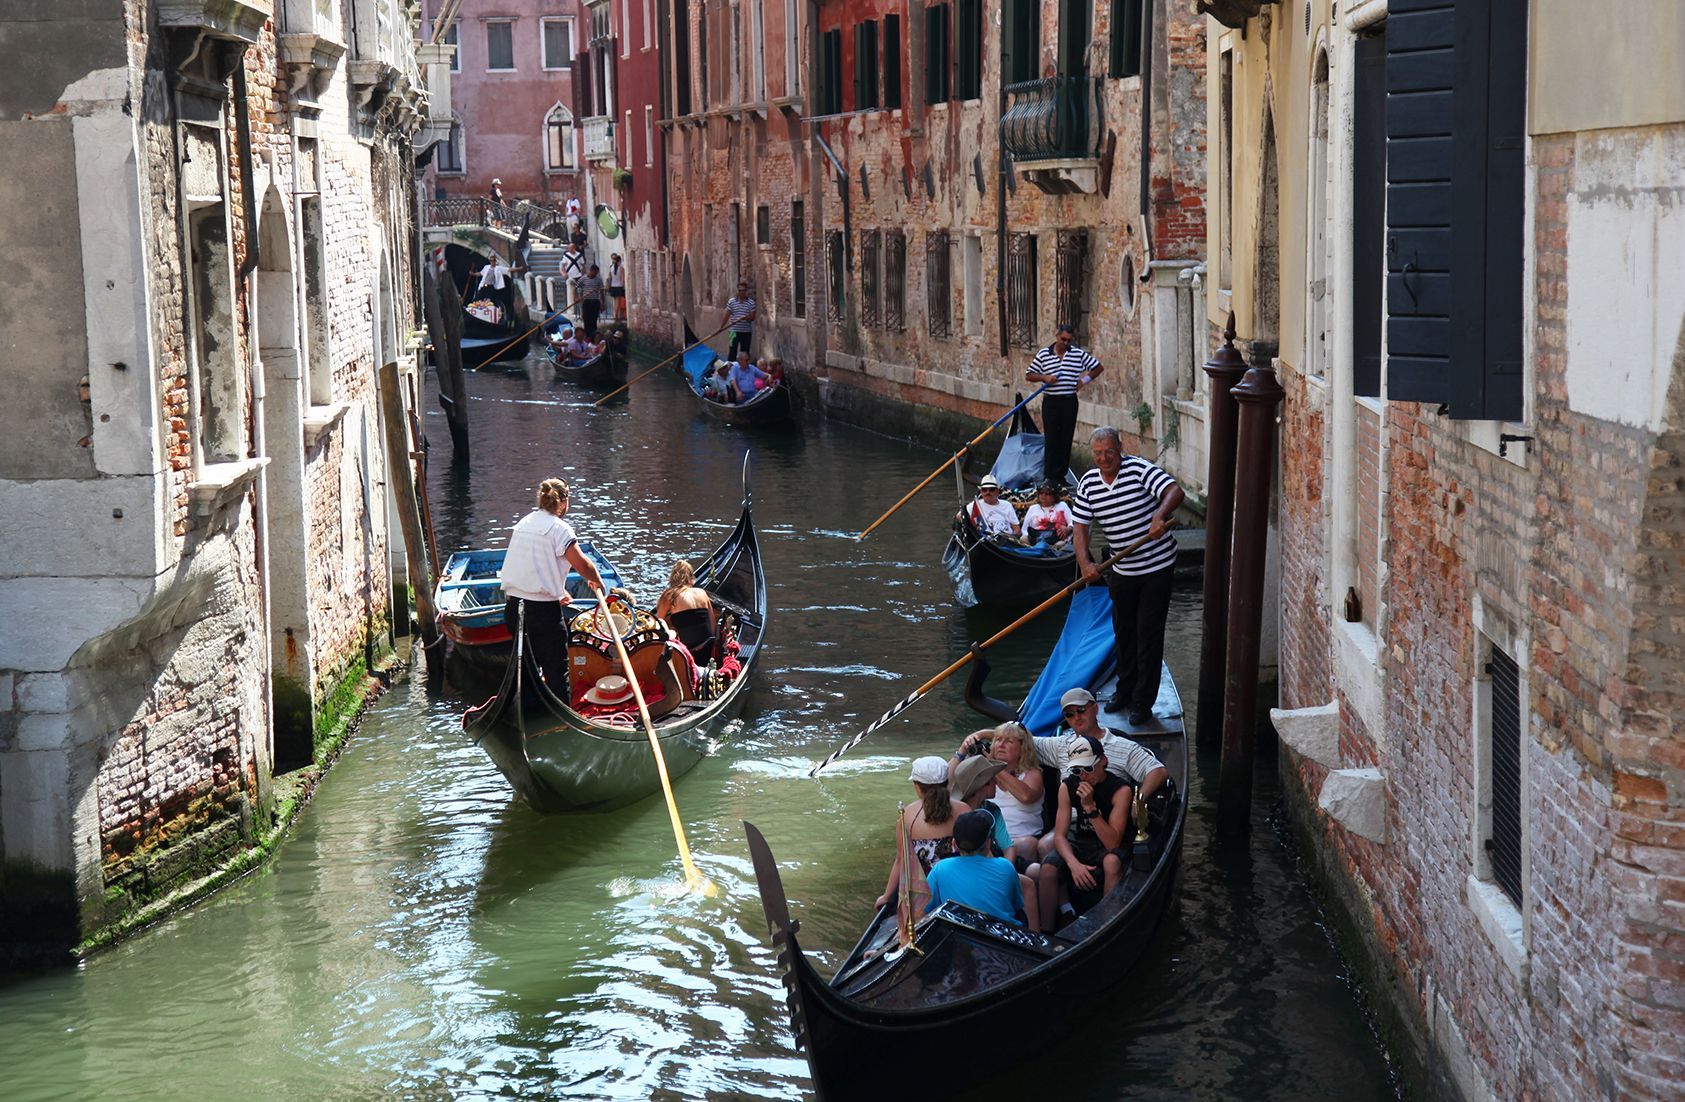 Venice Day Trip from Rome with Skip-the-Line Entry to St. Mark's Basilica